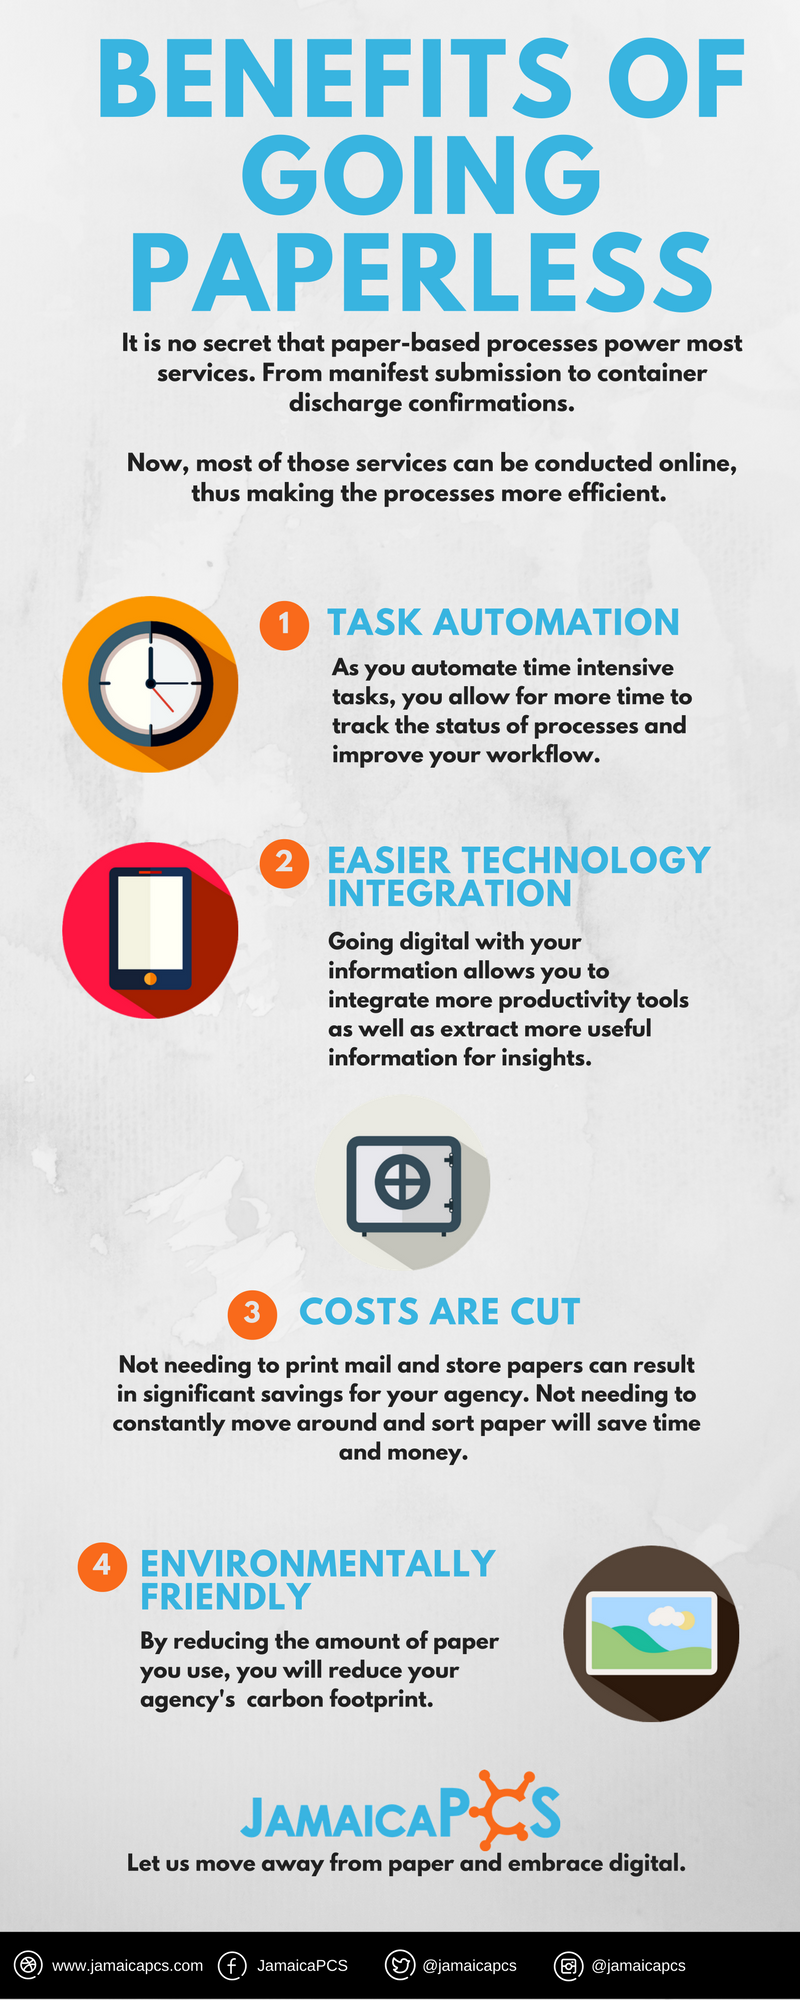 Benefits of Going Paperless Infographic